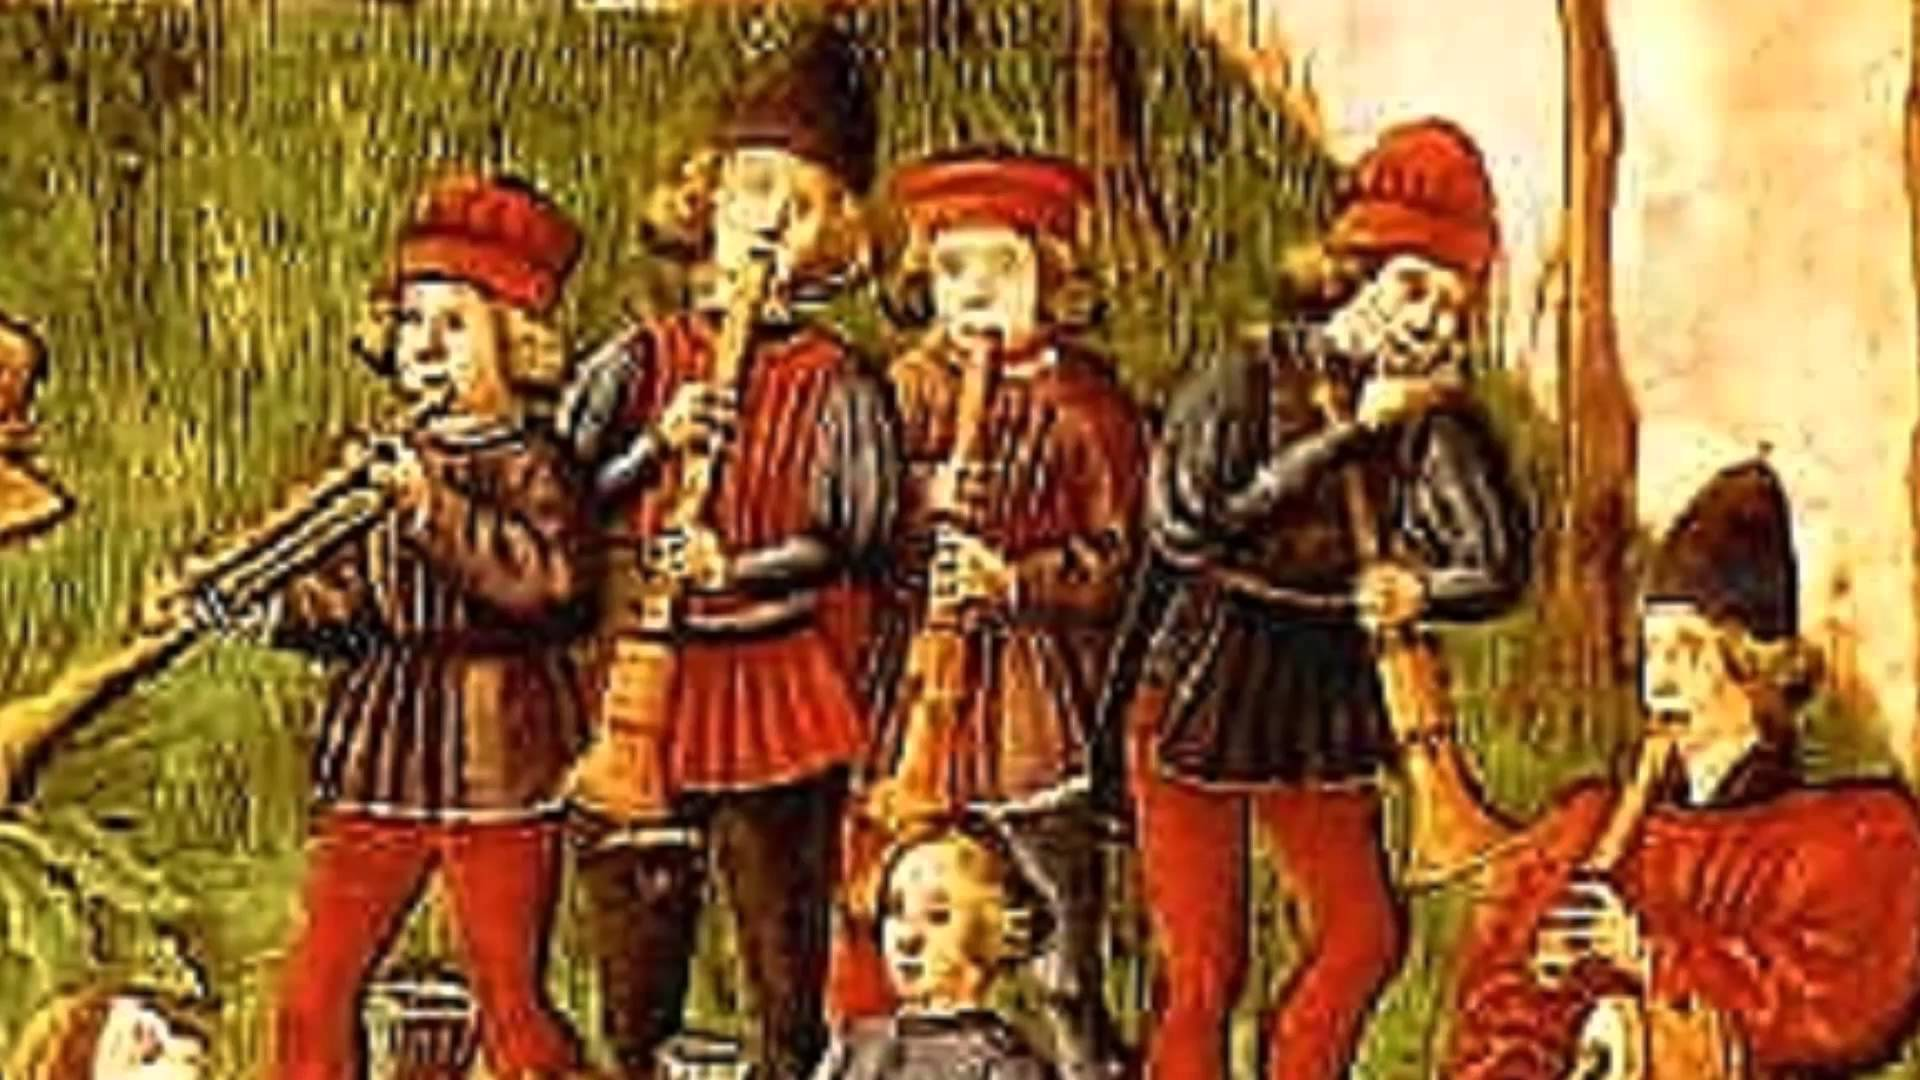 020318-40-Music-Medieval-Middle-Ages.jpg